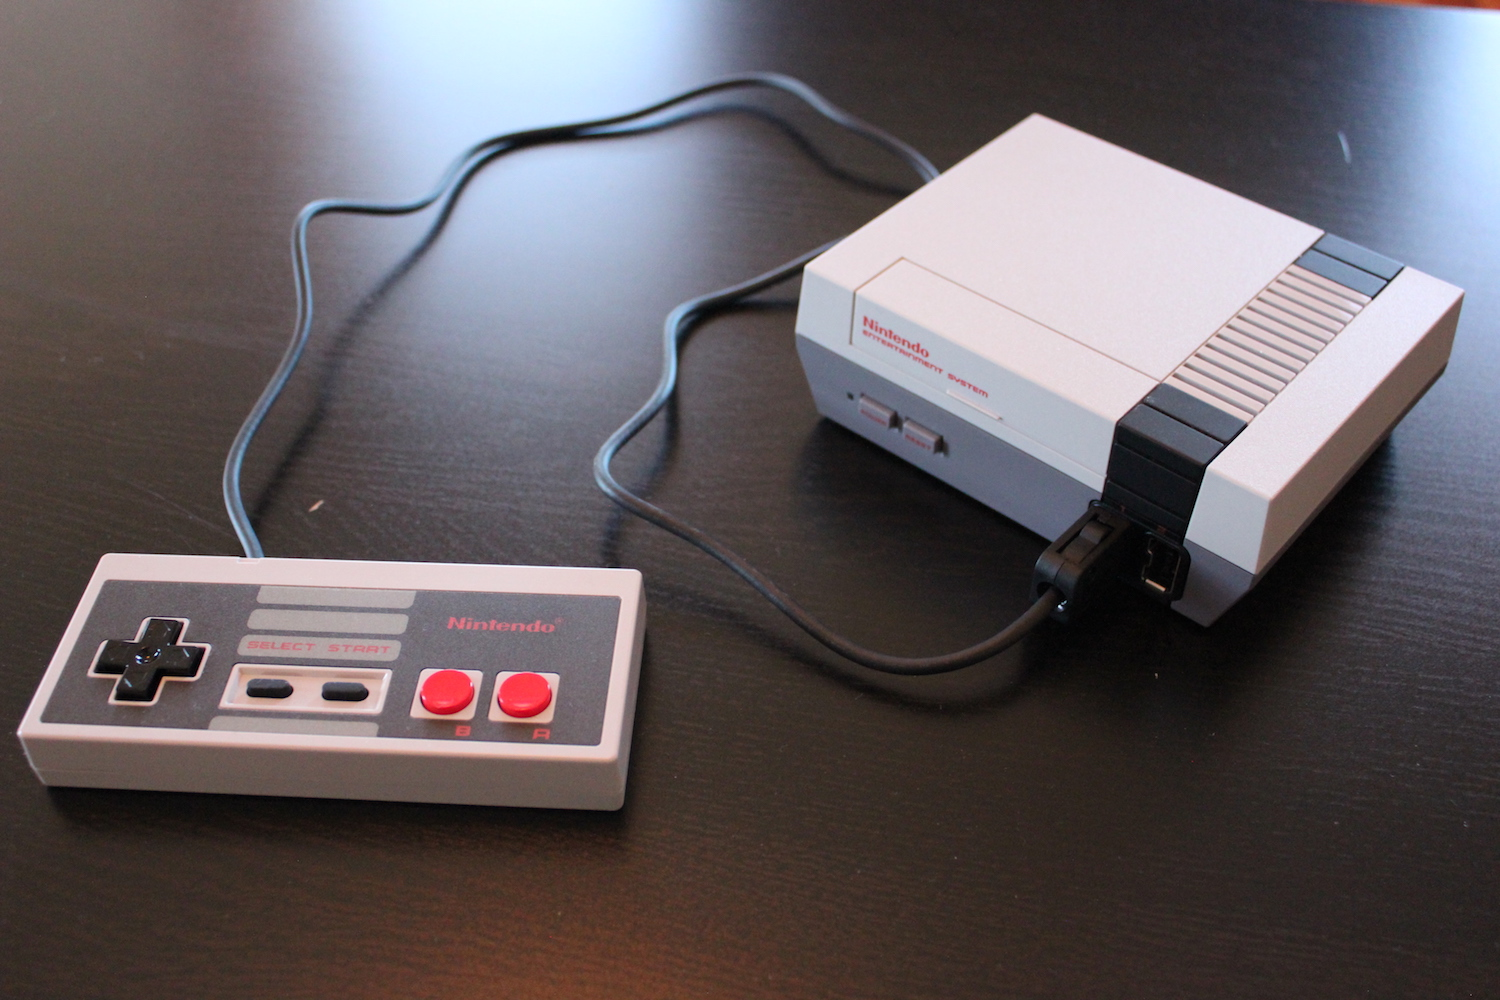 Nyko is releasing a much-needed NES Mini controller extension cable